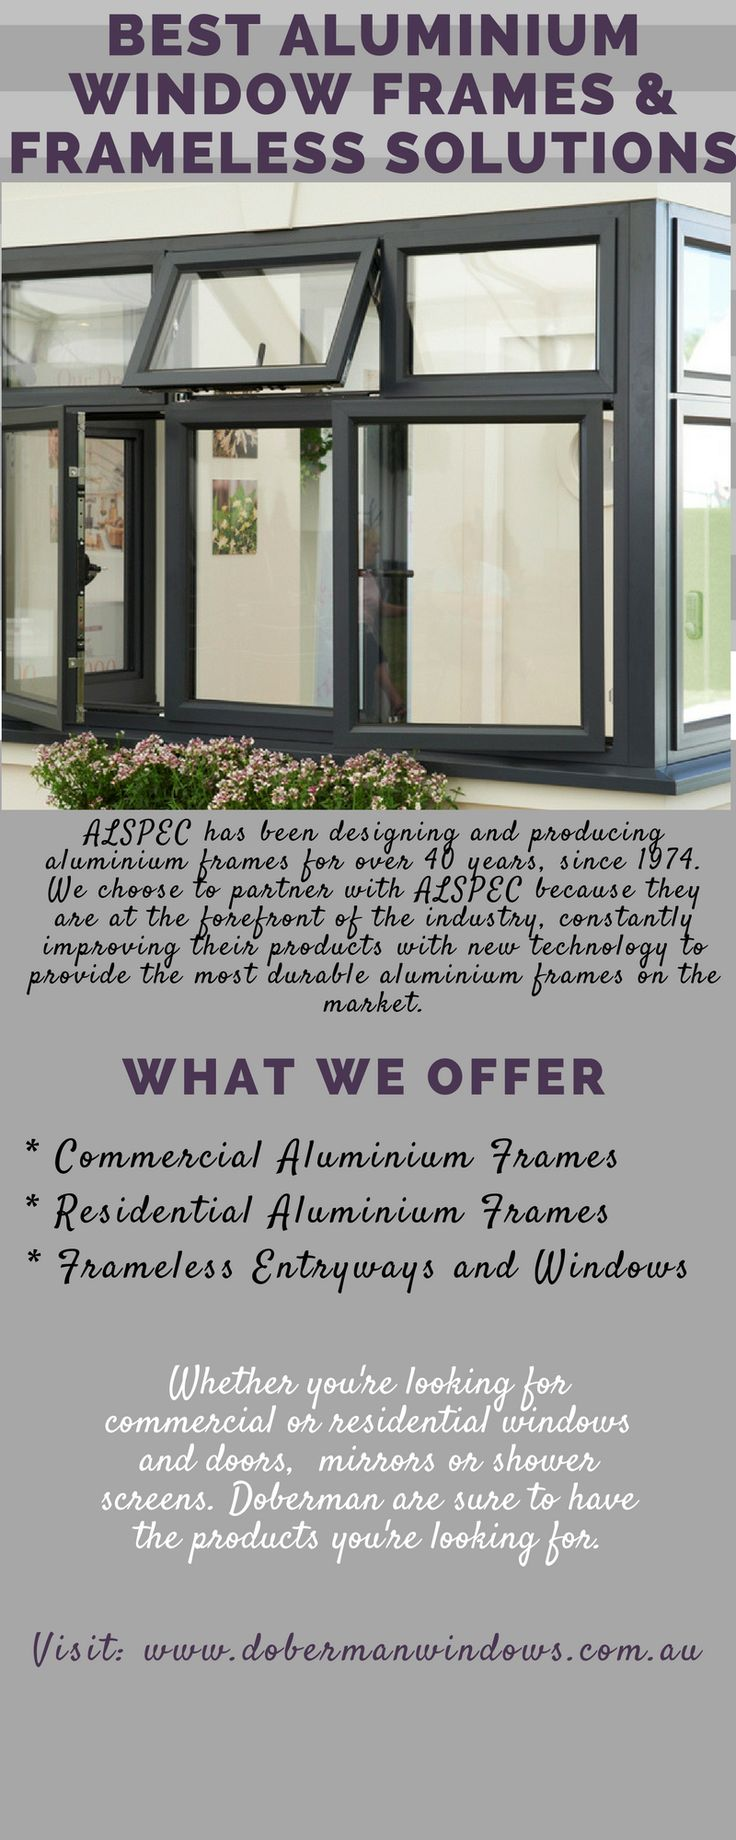 The best aluminium window and door frames are ones that are robust, flexible and attractive. At Doberman Windows and Doors we provide frames from one of Australia's most trusted aluminium window and door frame manufacturers, ALSPEC. ALSPEC has been designing and producing aluminium frames for over 40 years, since 1974.